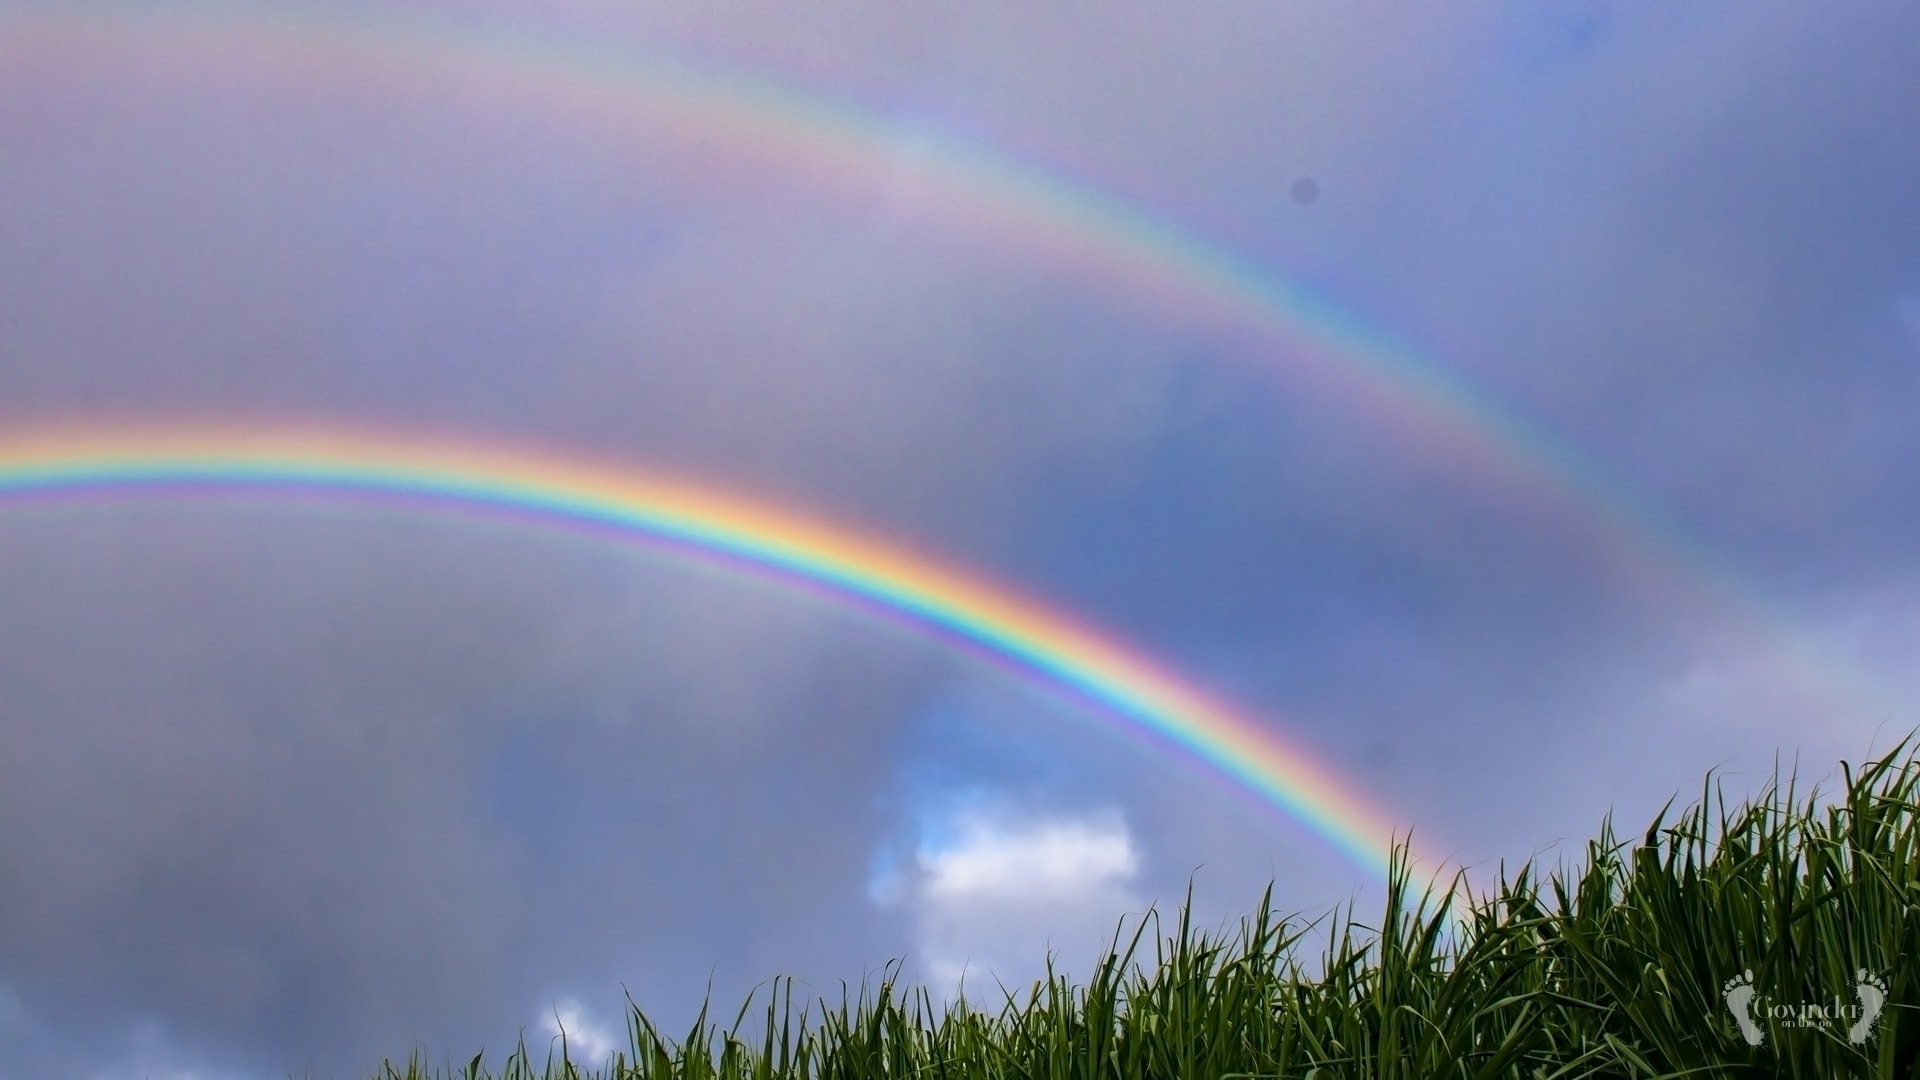 Double rainbow over sugarcane field in Mauritius